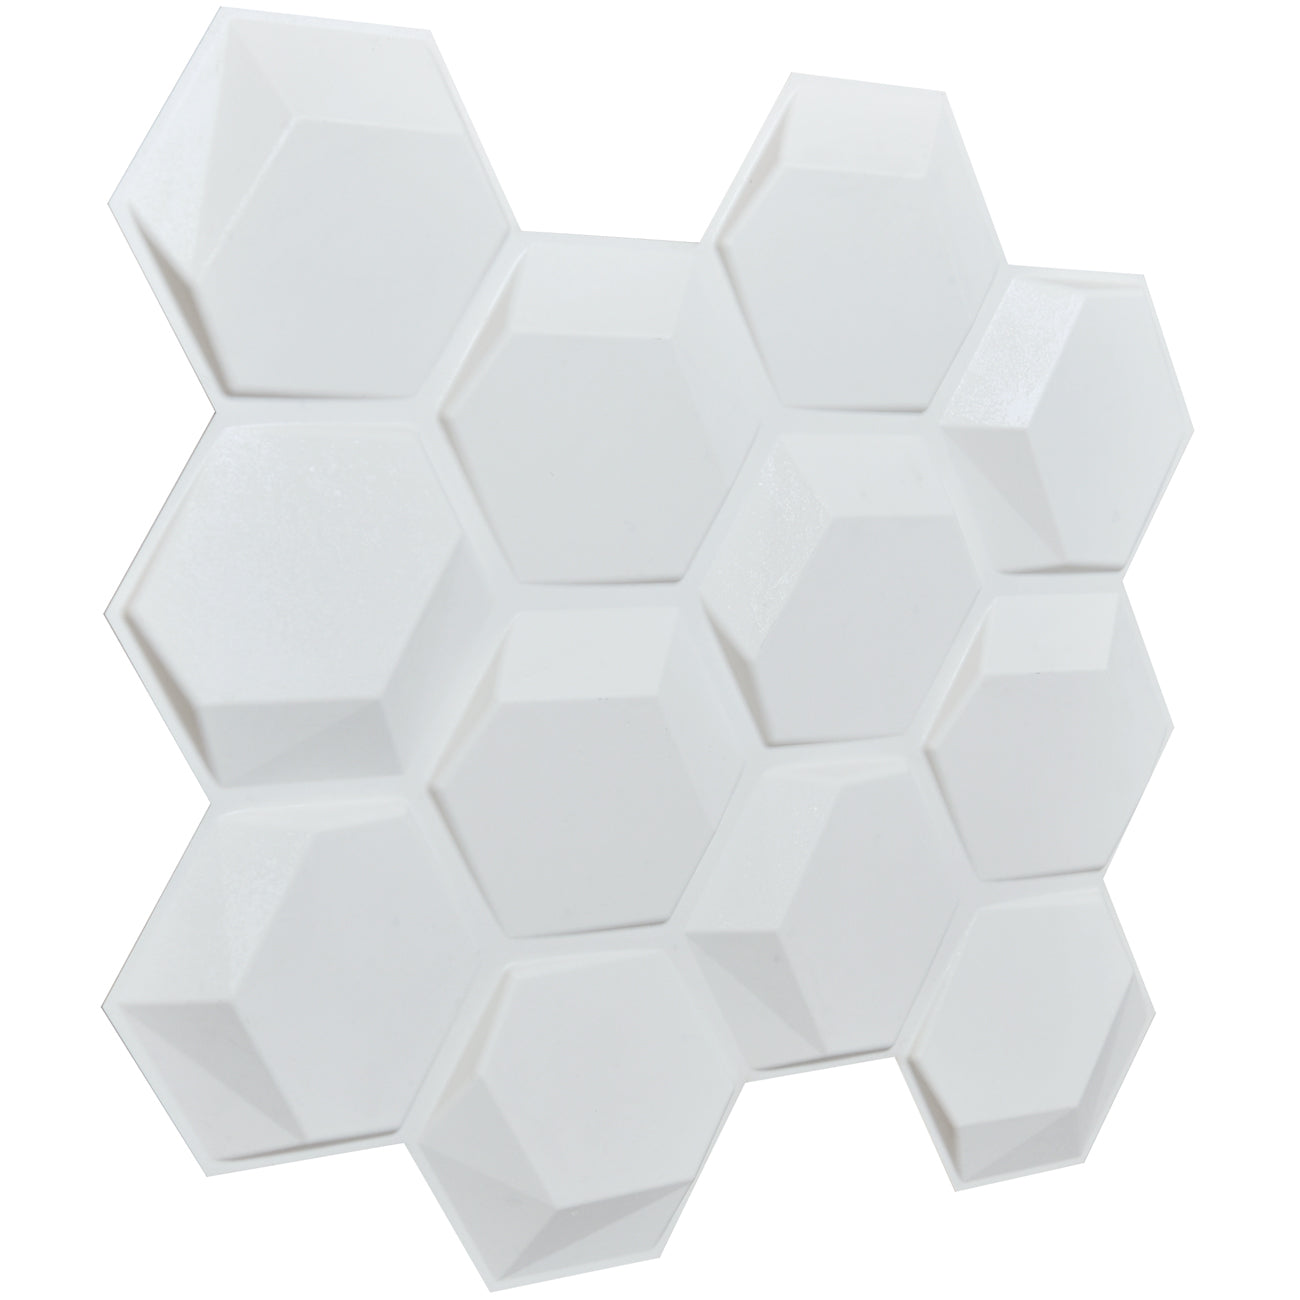 3D Plant Fiber Wall Panels, puzzle hexagon design in primed white, pack of 18 tiles cover 41 sq.ft